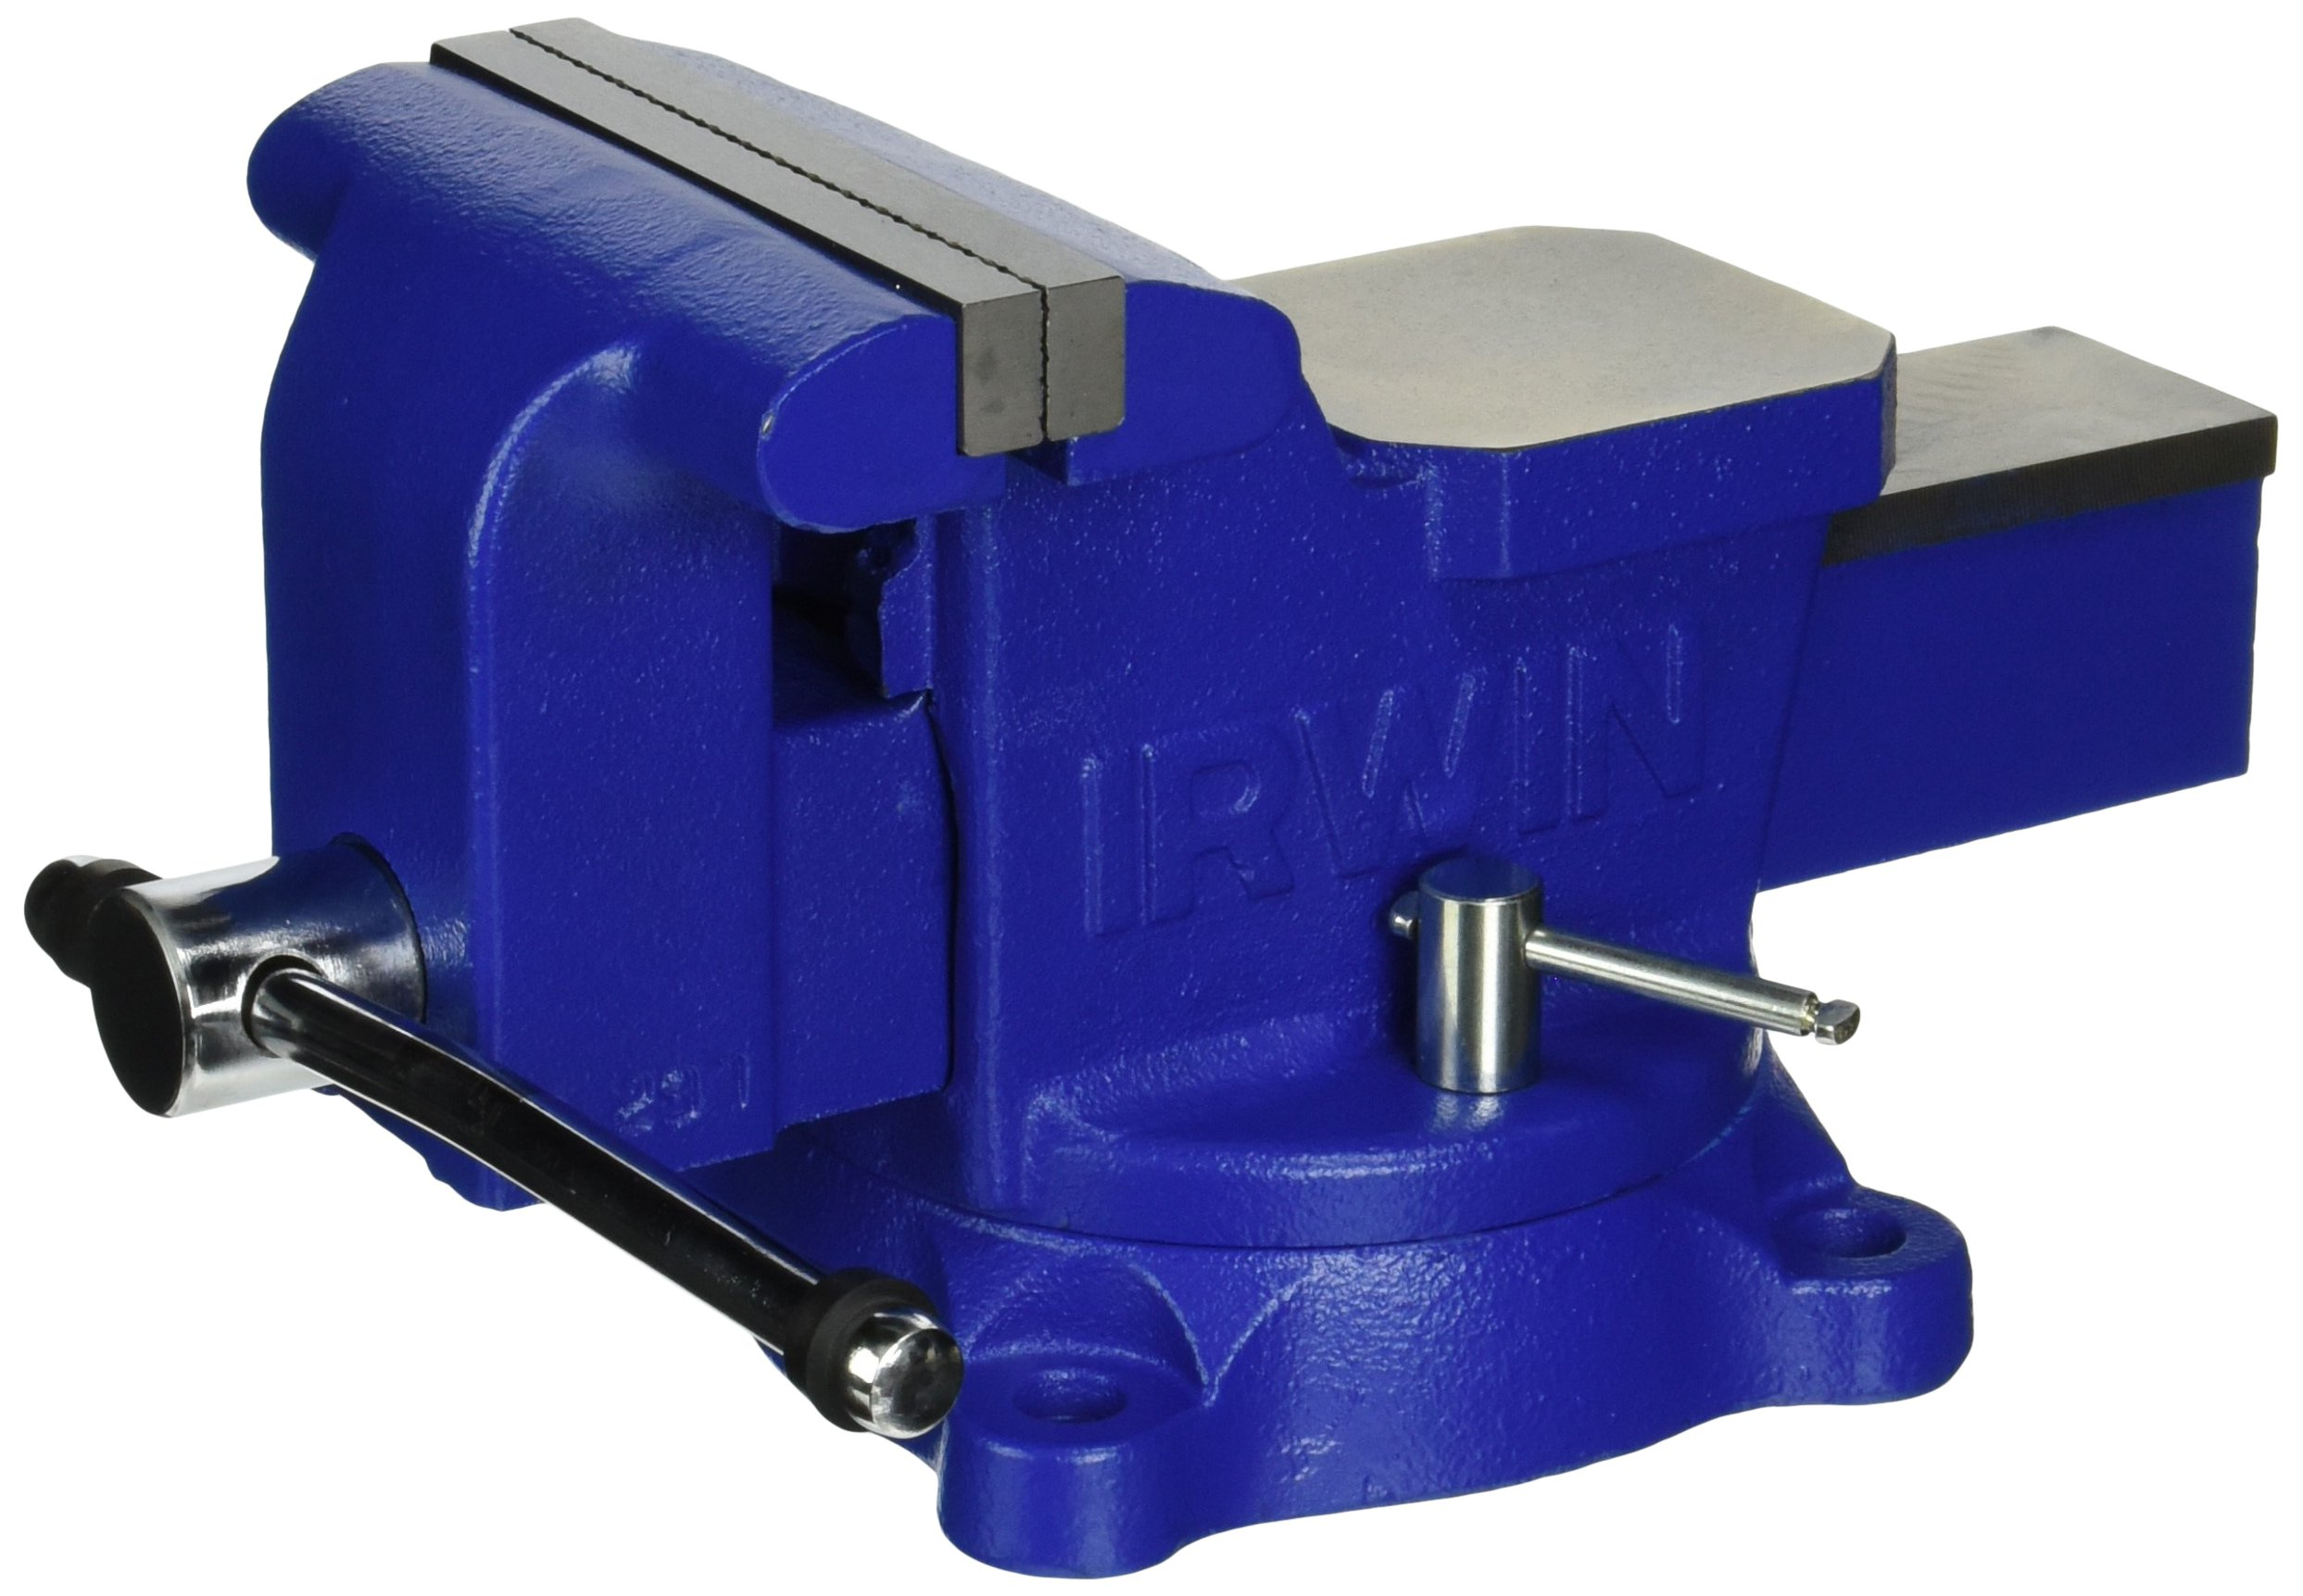 IRWIN Heavy-Duty Workshop Vise, 6'', 226306ZR by Irwin Tools